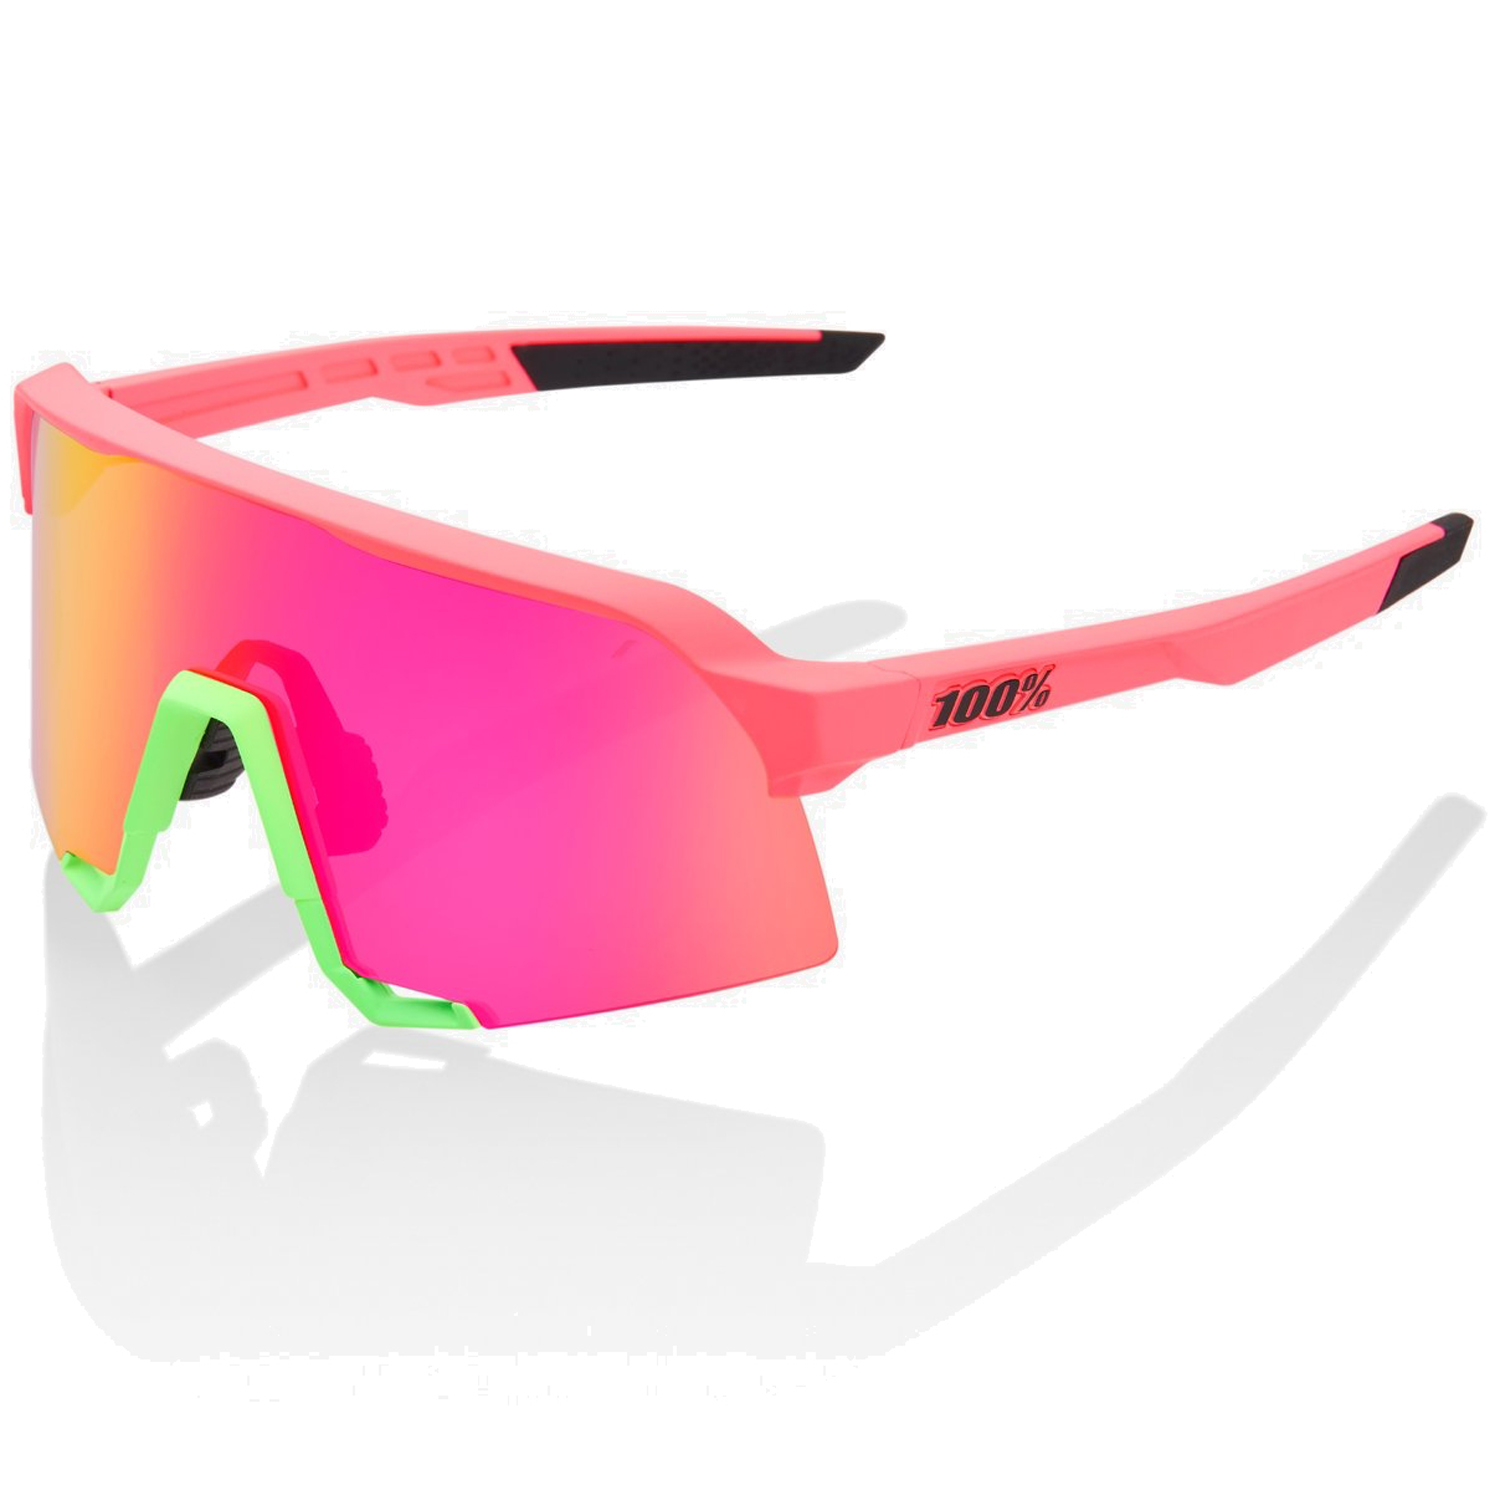 100% S3 Mirror Gafas - Matte Washed Out Neon Pink/Purple Multilayer + Clear